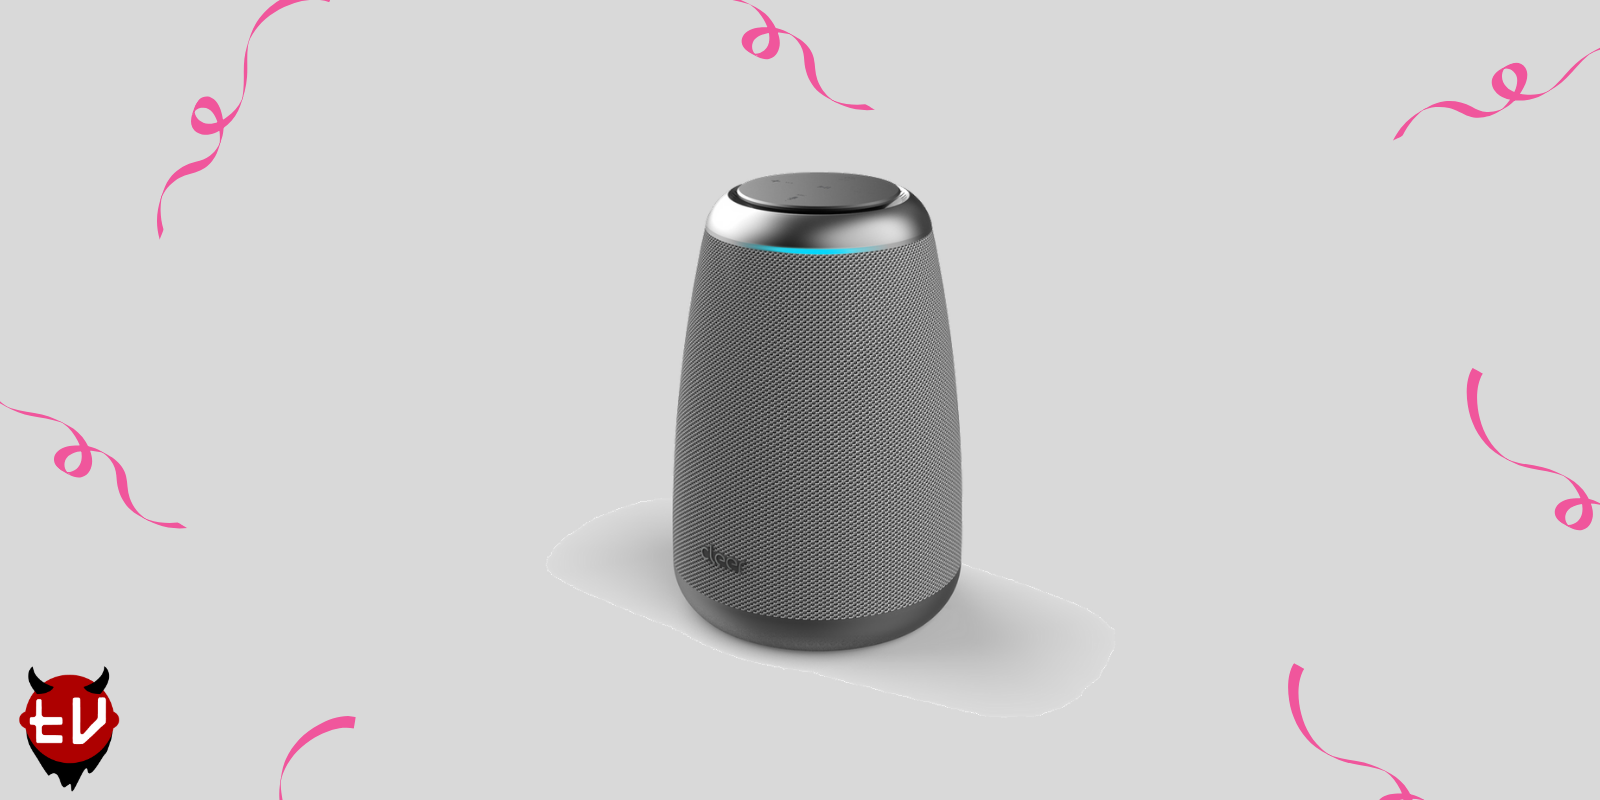 Alibaba's Ai Smart Speakers for Cars